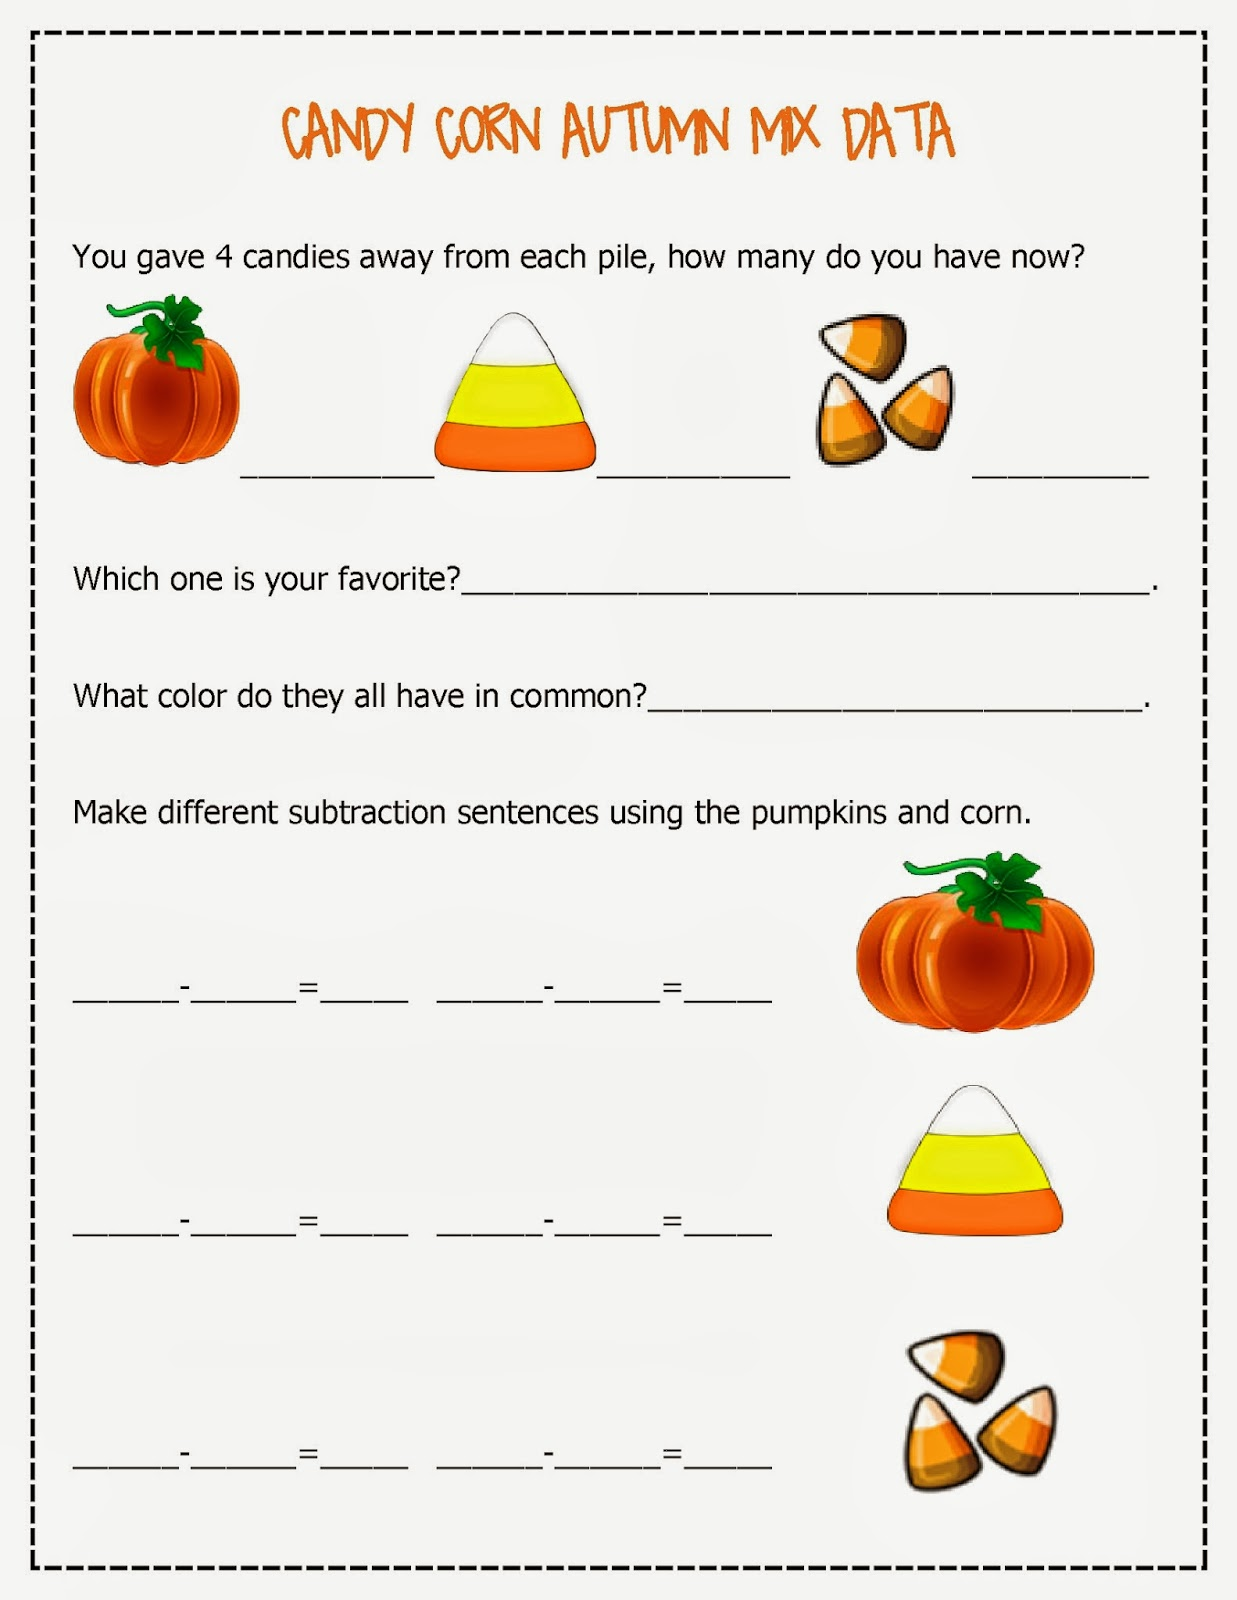 Candy Corn Autumn Mix Free Math Worksheets